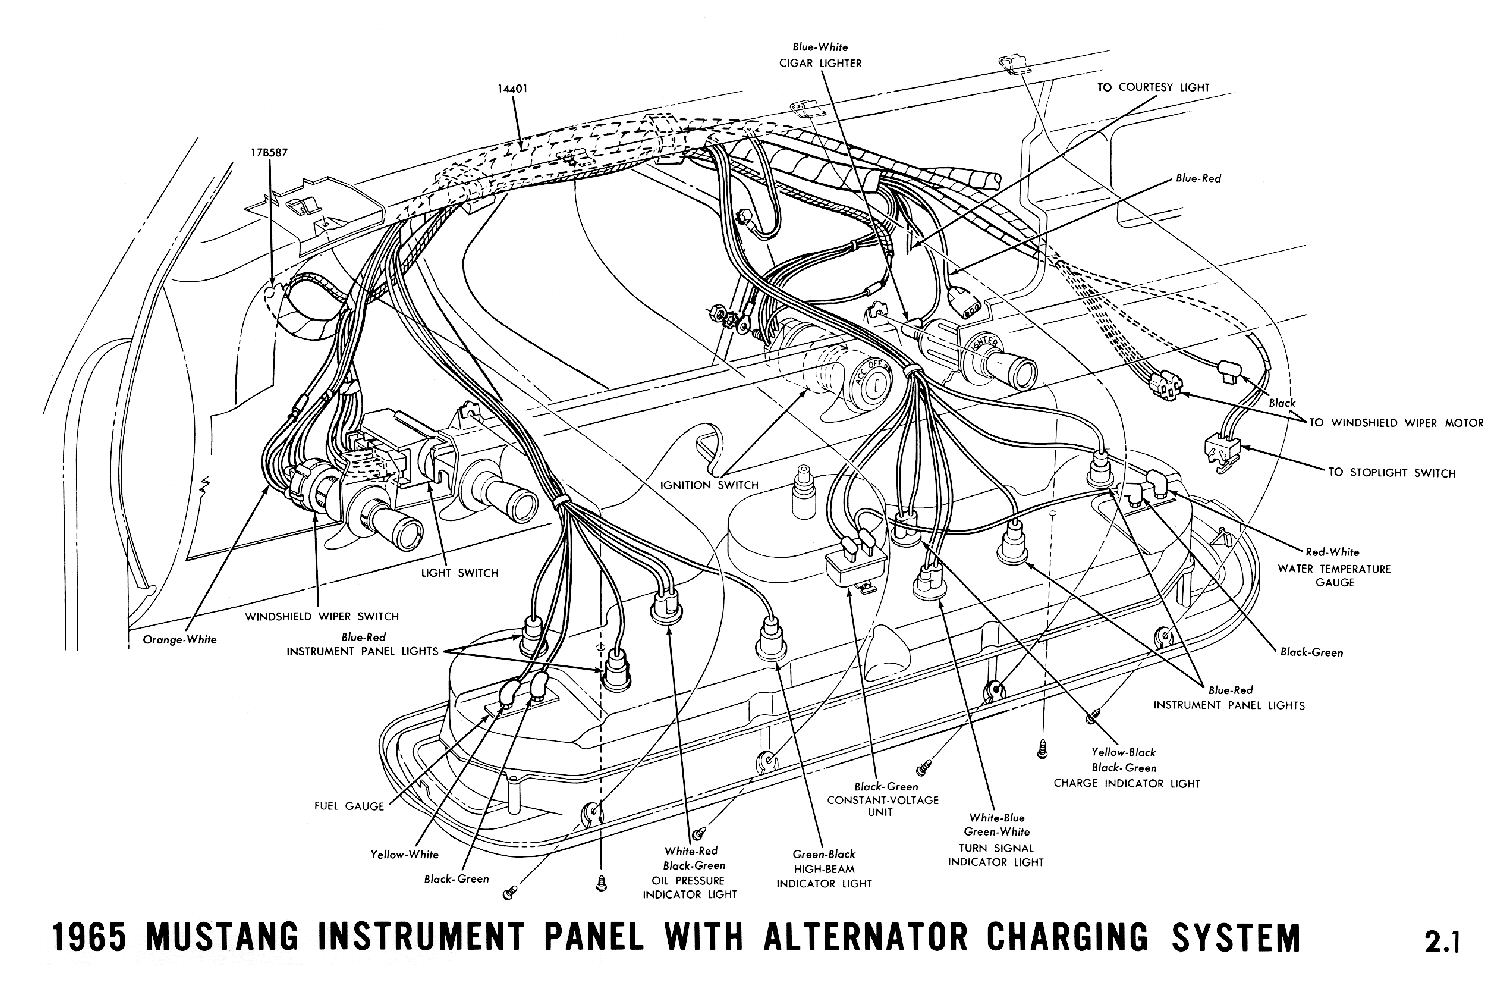 1965a 1965 mustang wiring diagrams average joe restoration mustang wiring harness at alyssarenee.co